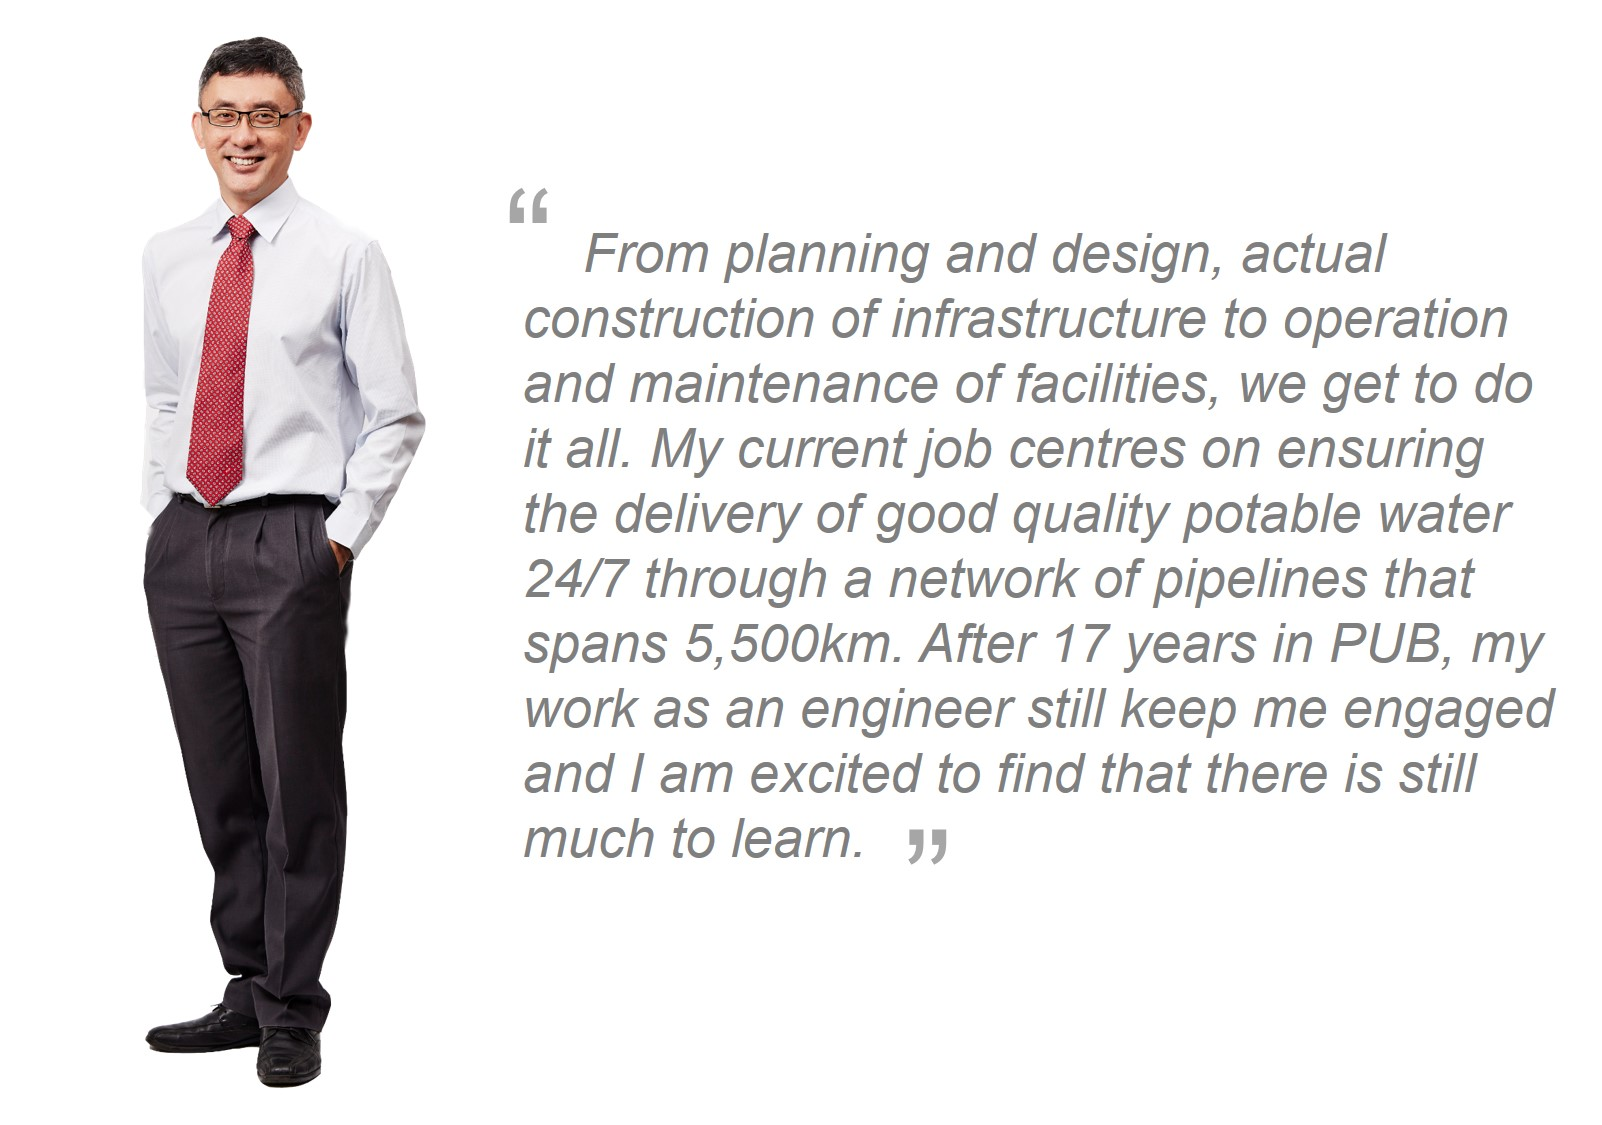 Employee Kah Cheong Pull Quote